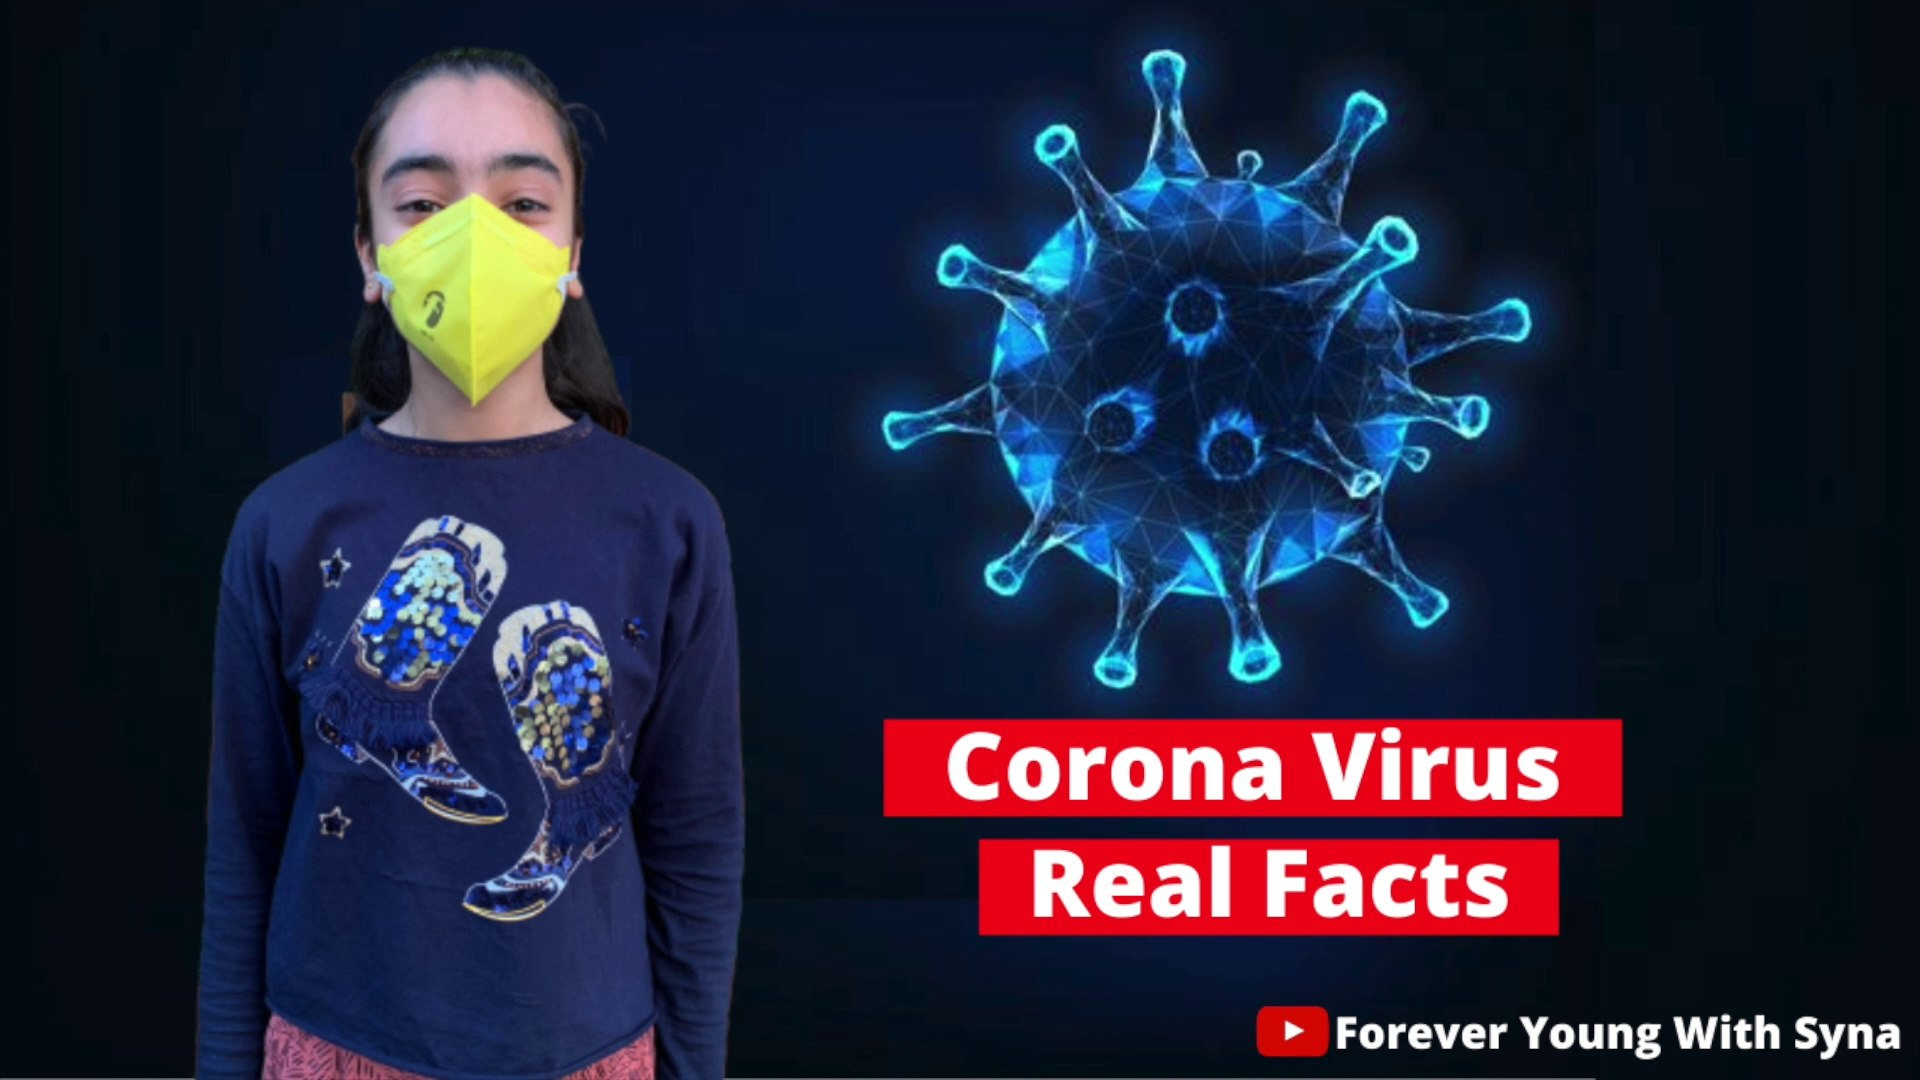 Corona Virus Real Facts || Facts About Corona Virus || Forever Young With Syna